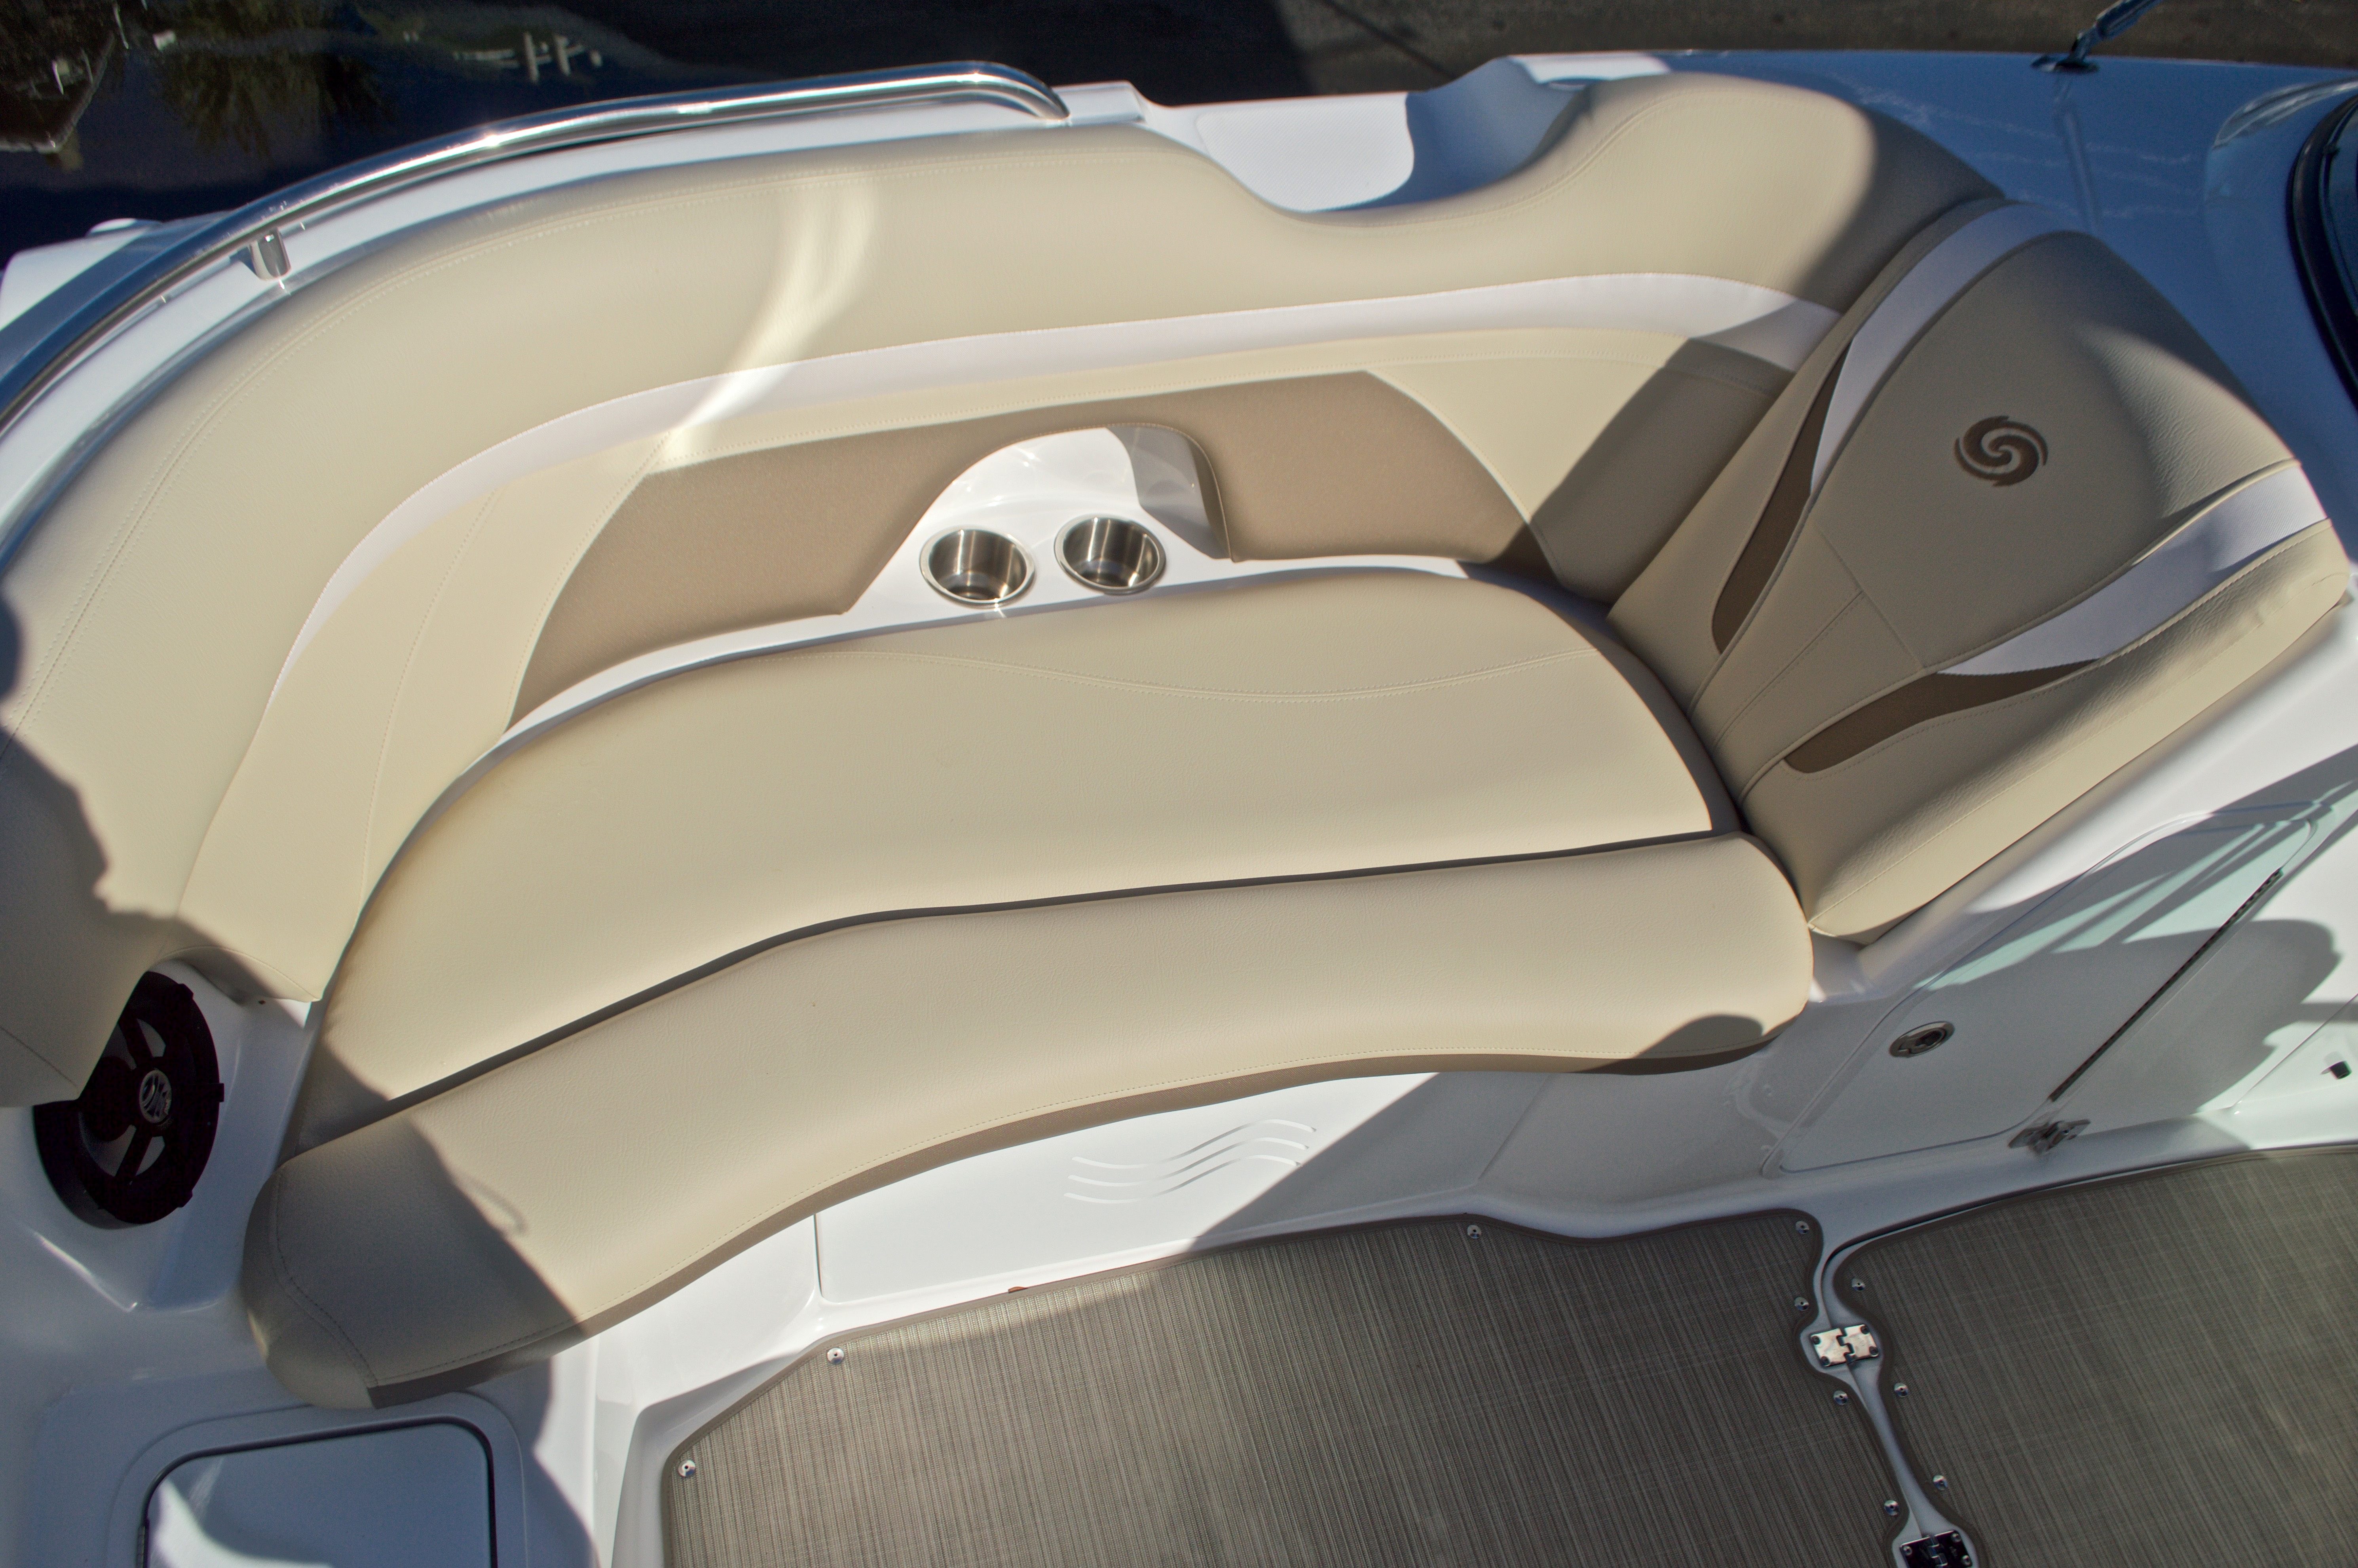 Thumbnail 48 for New 2017 Hurricane SunDeck SD 2200 OB boat for sale in West Palm Beach, FL